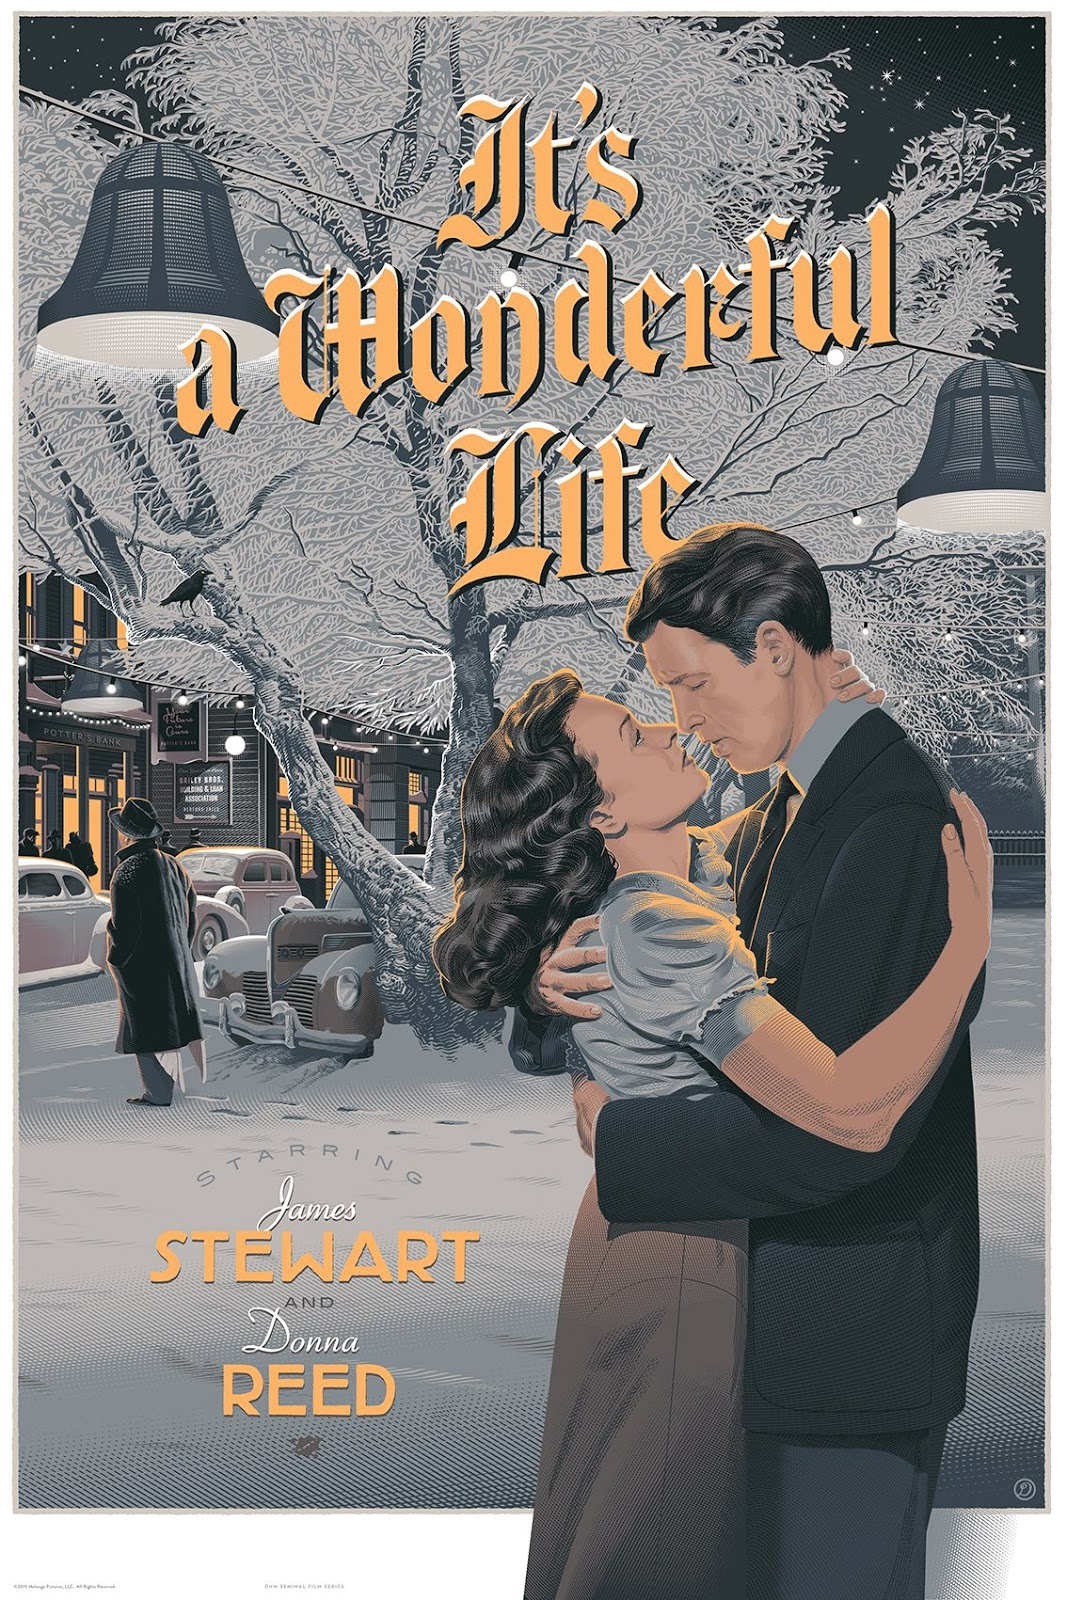 Inside The Rock Poster Frame Blog Laurent Durieux It 39 S A Wonderful Life Poster Release